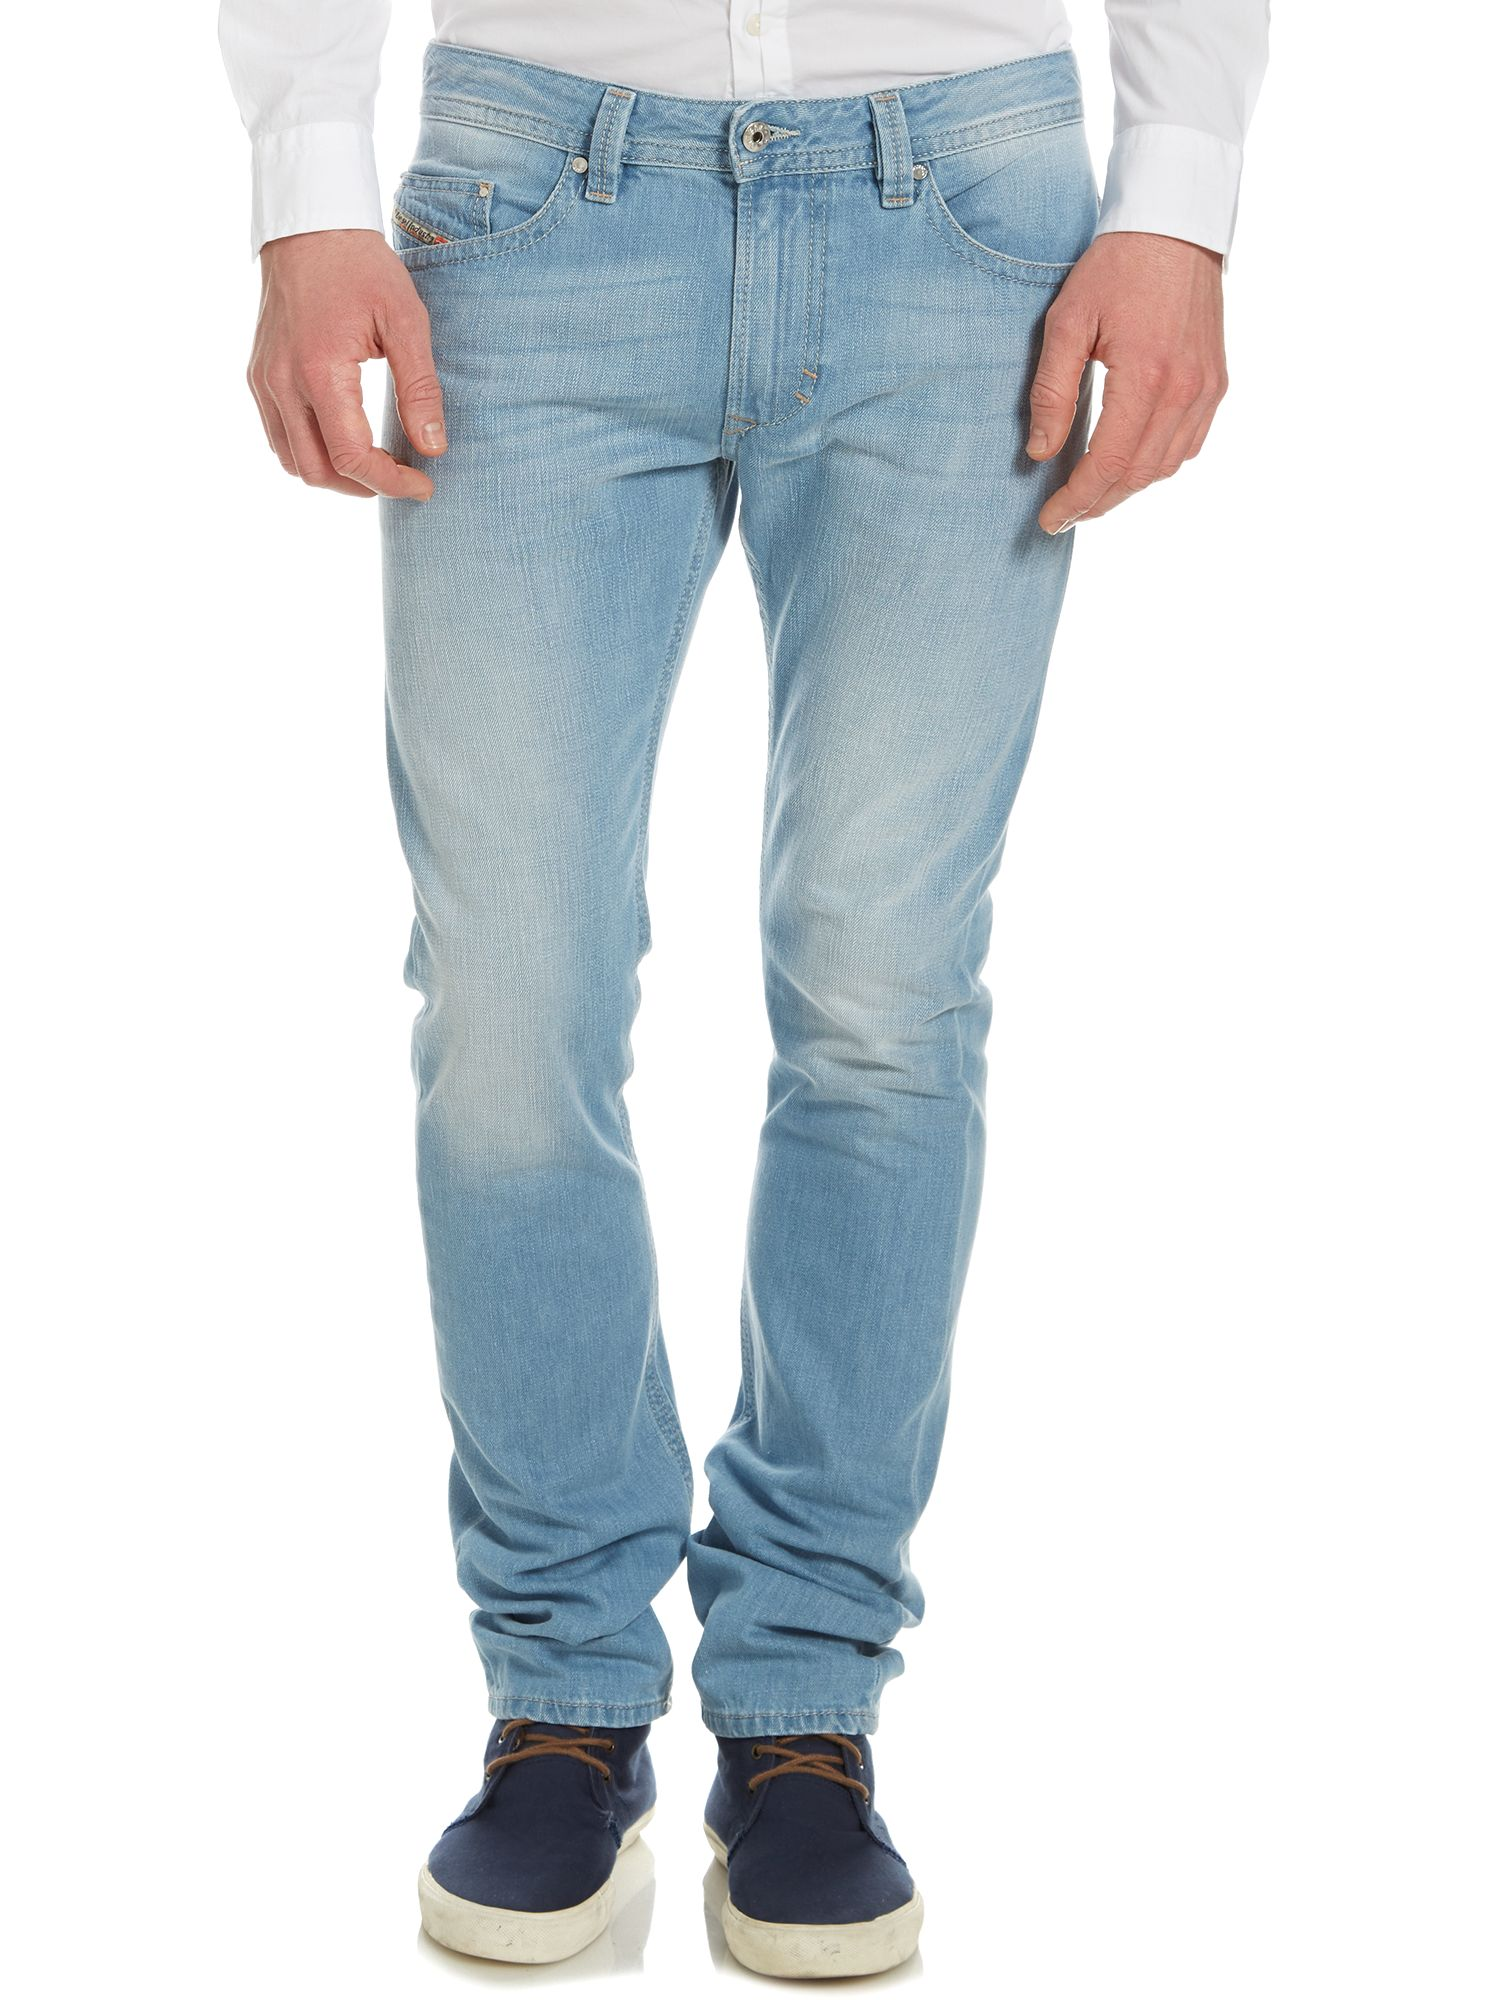 Thavar 0825Z light wash slim fit jean